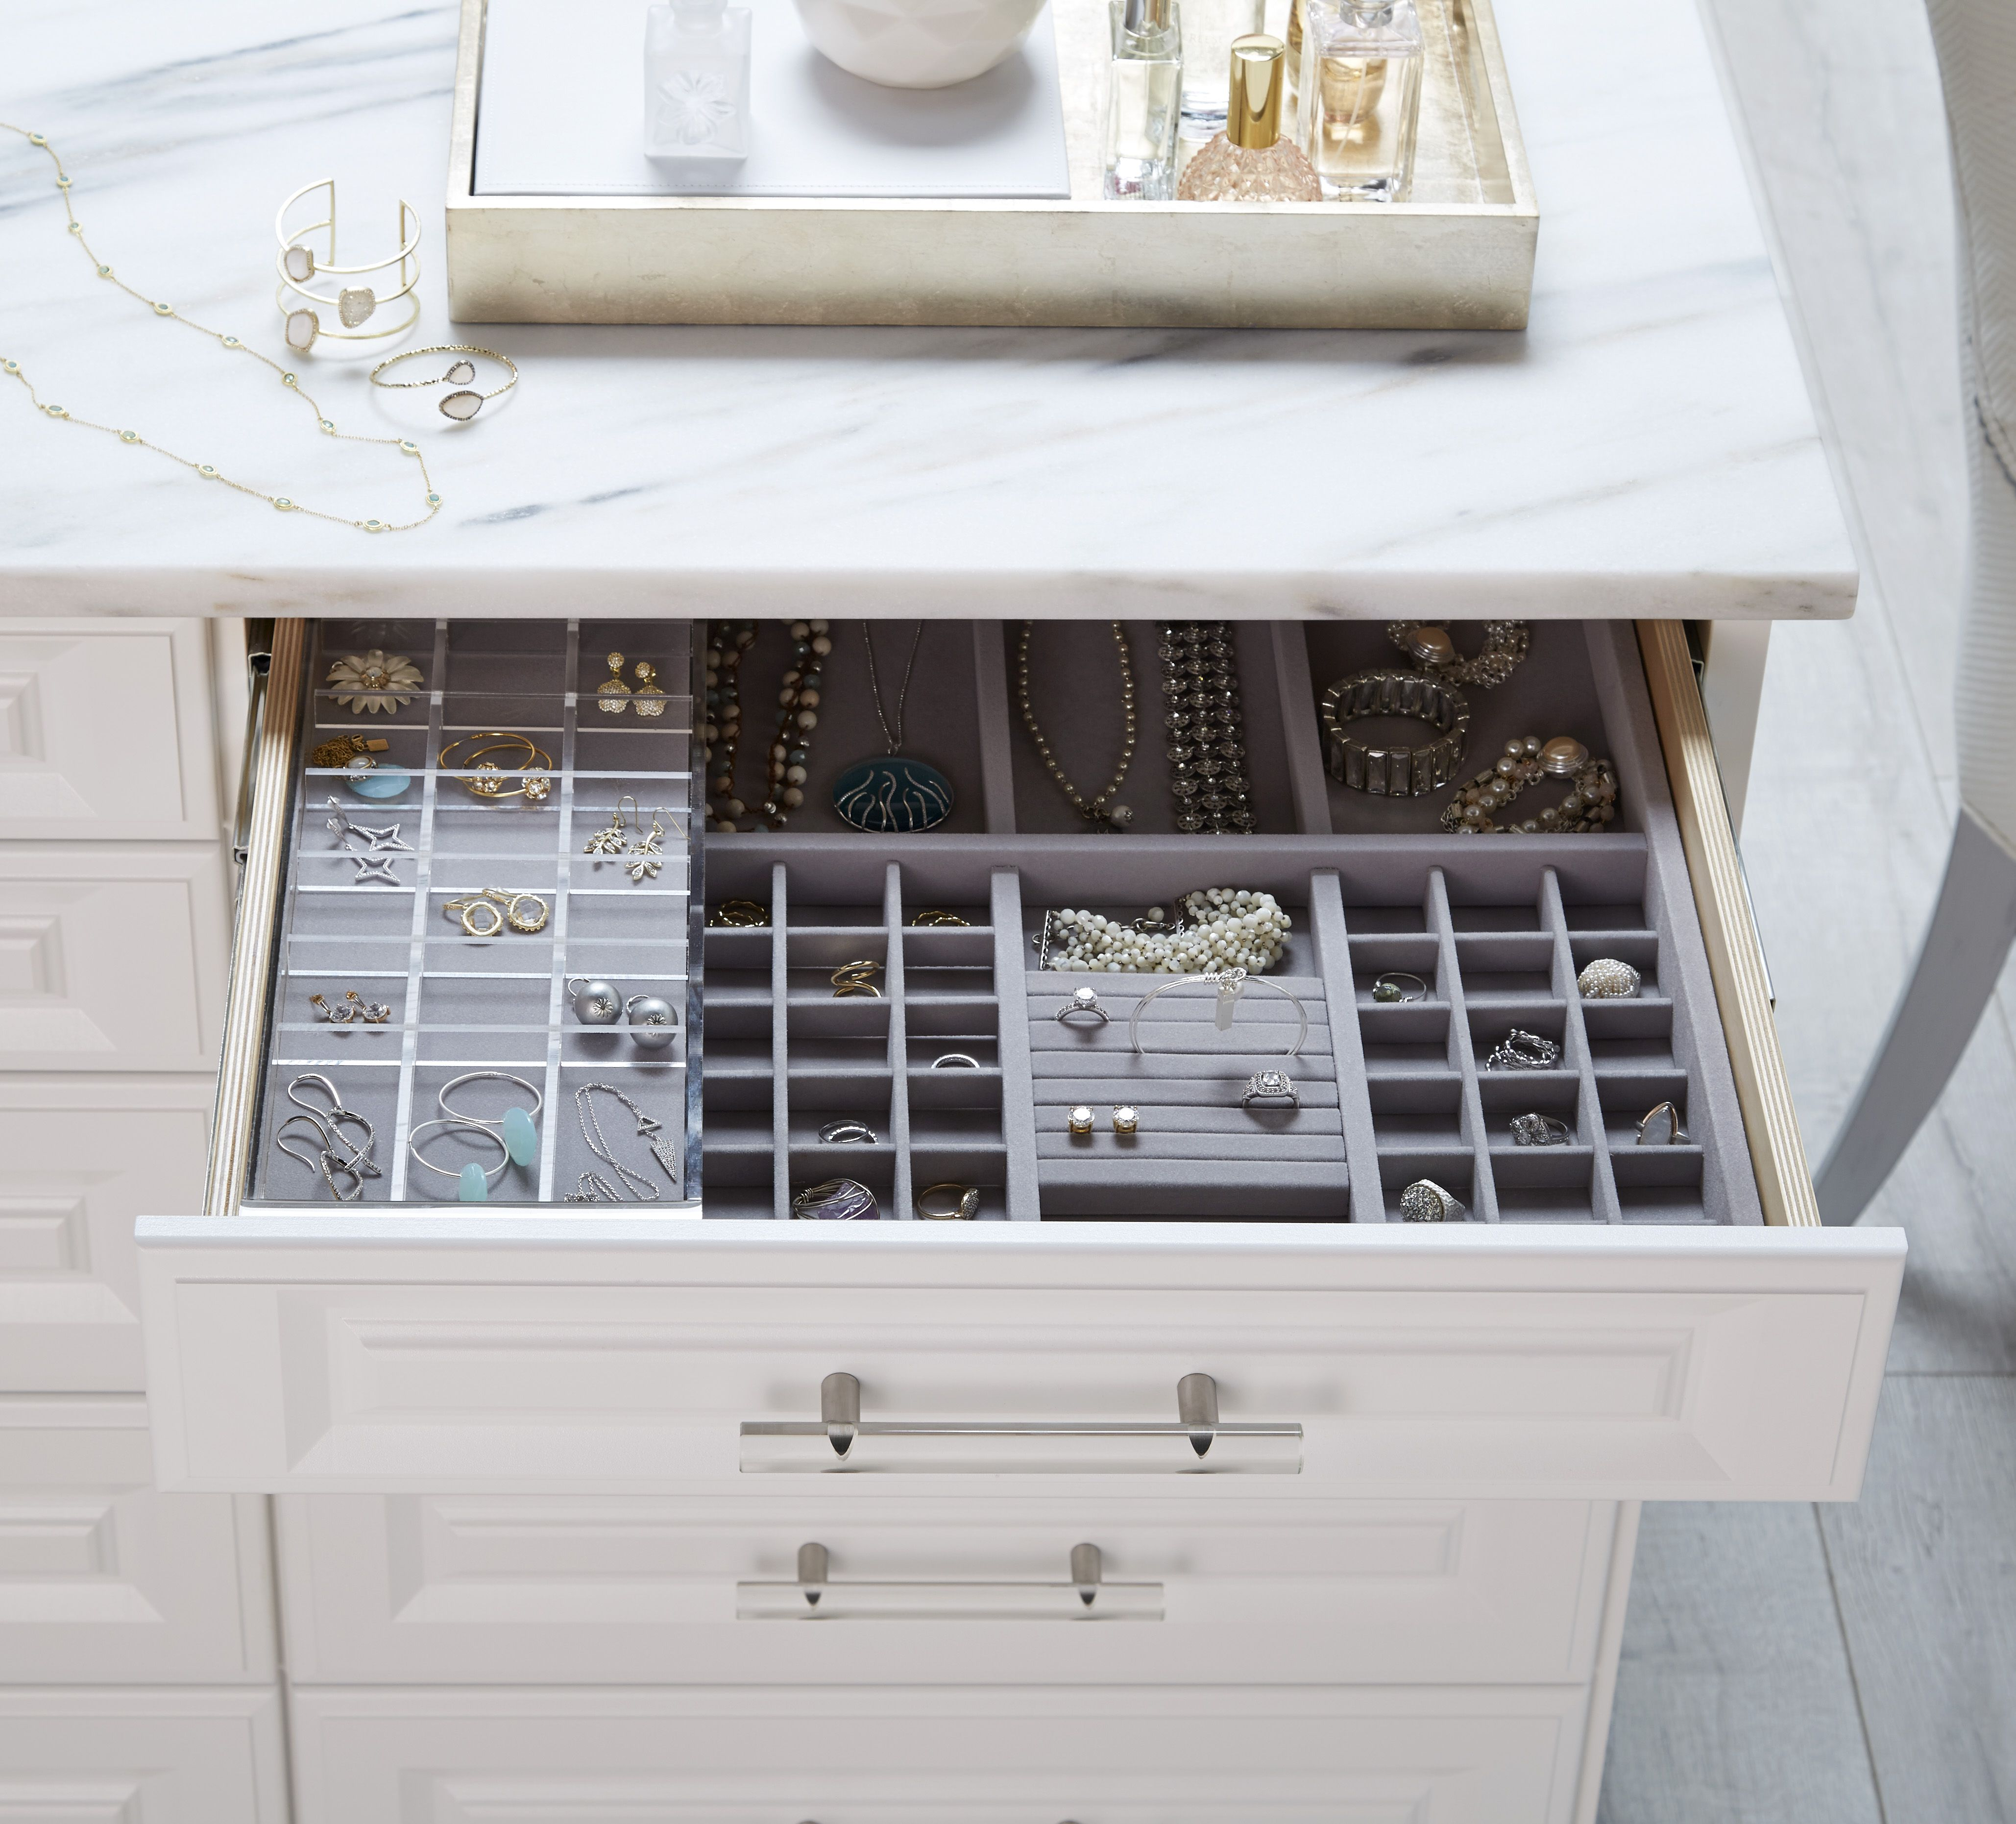 Have An Extensive Jewelry Collection Create All The Room You Could Dream Of With Customized Jewelry Storage Th Closet Designs Closet Design Closet Inspiration